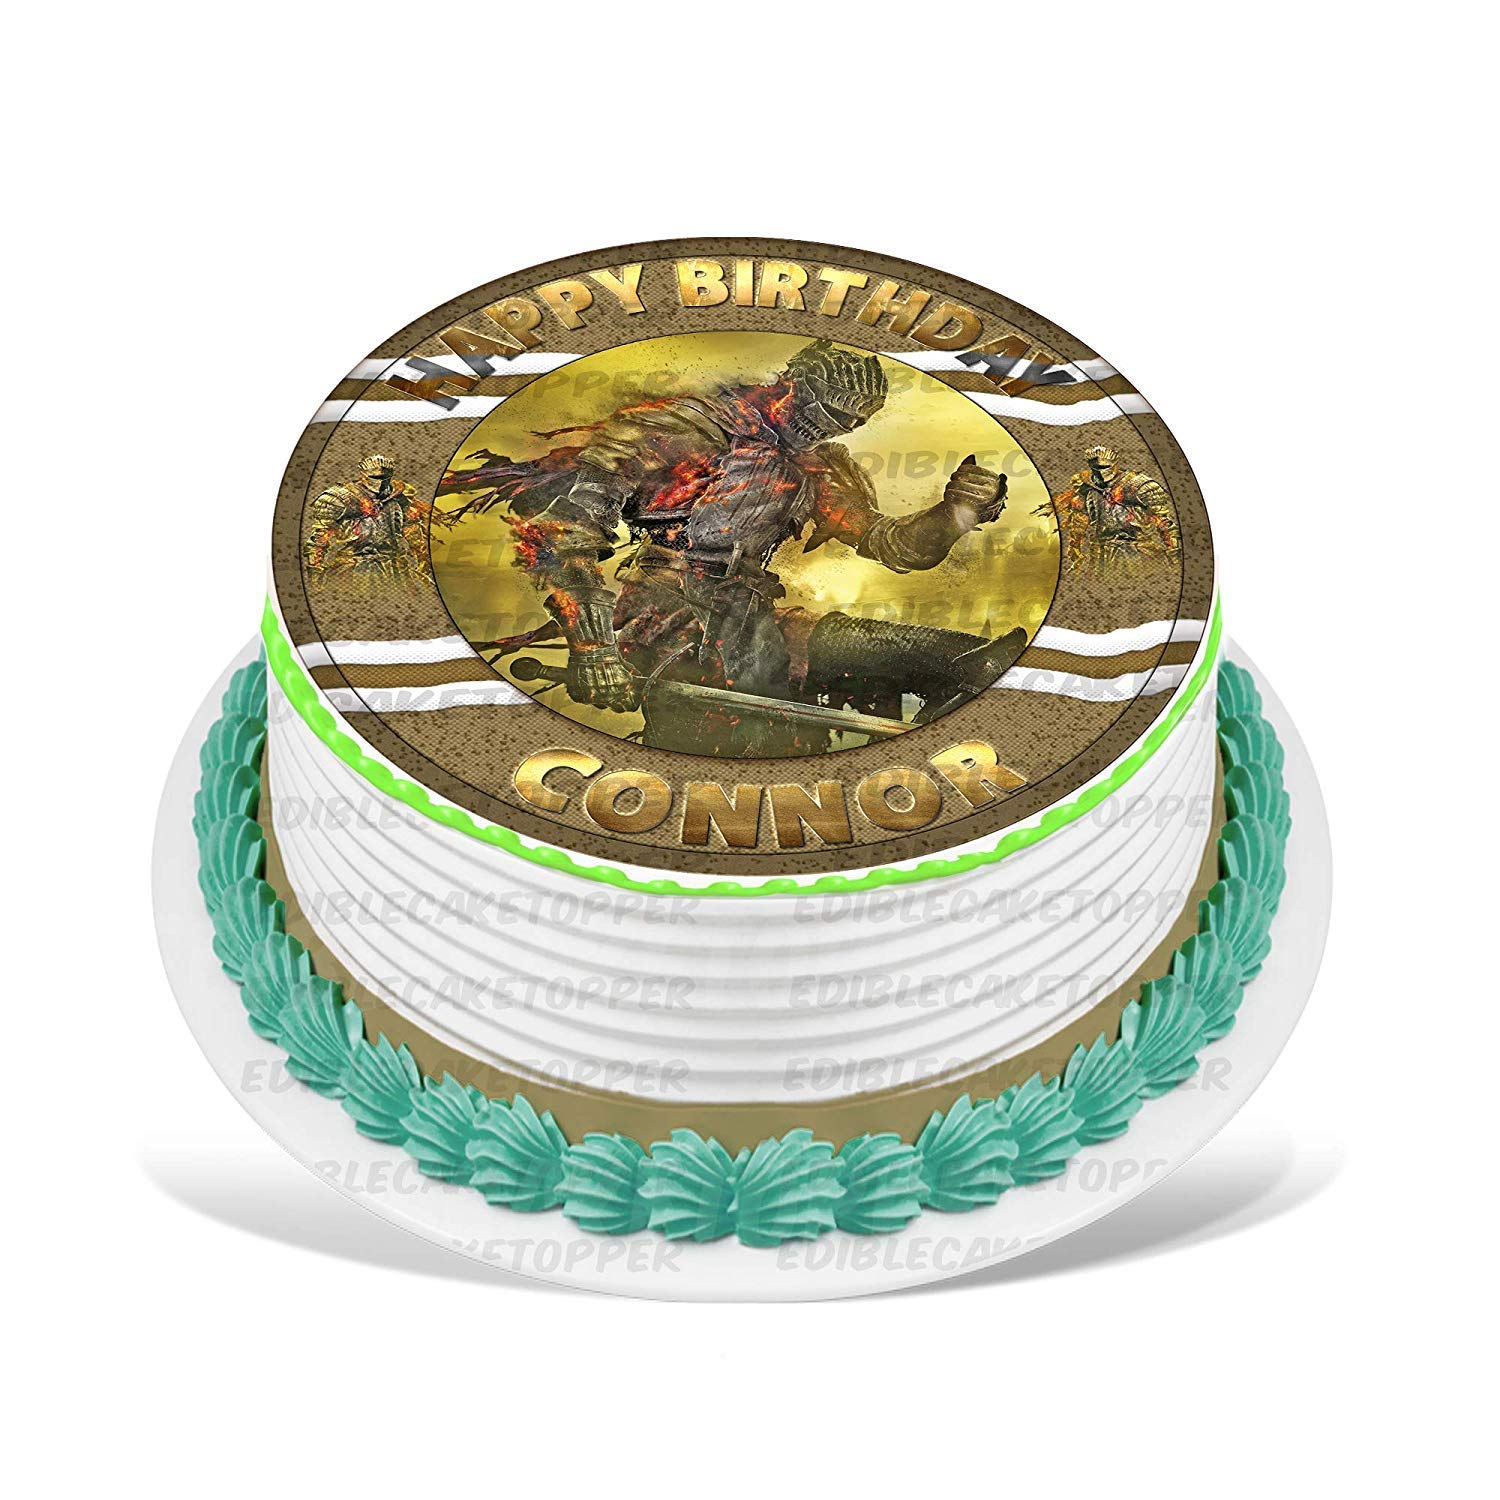 Amazon.com : PartyPrint Dark Souls Edible Cake Topper ...